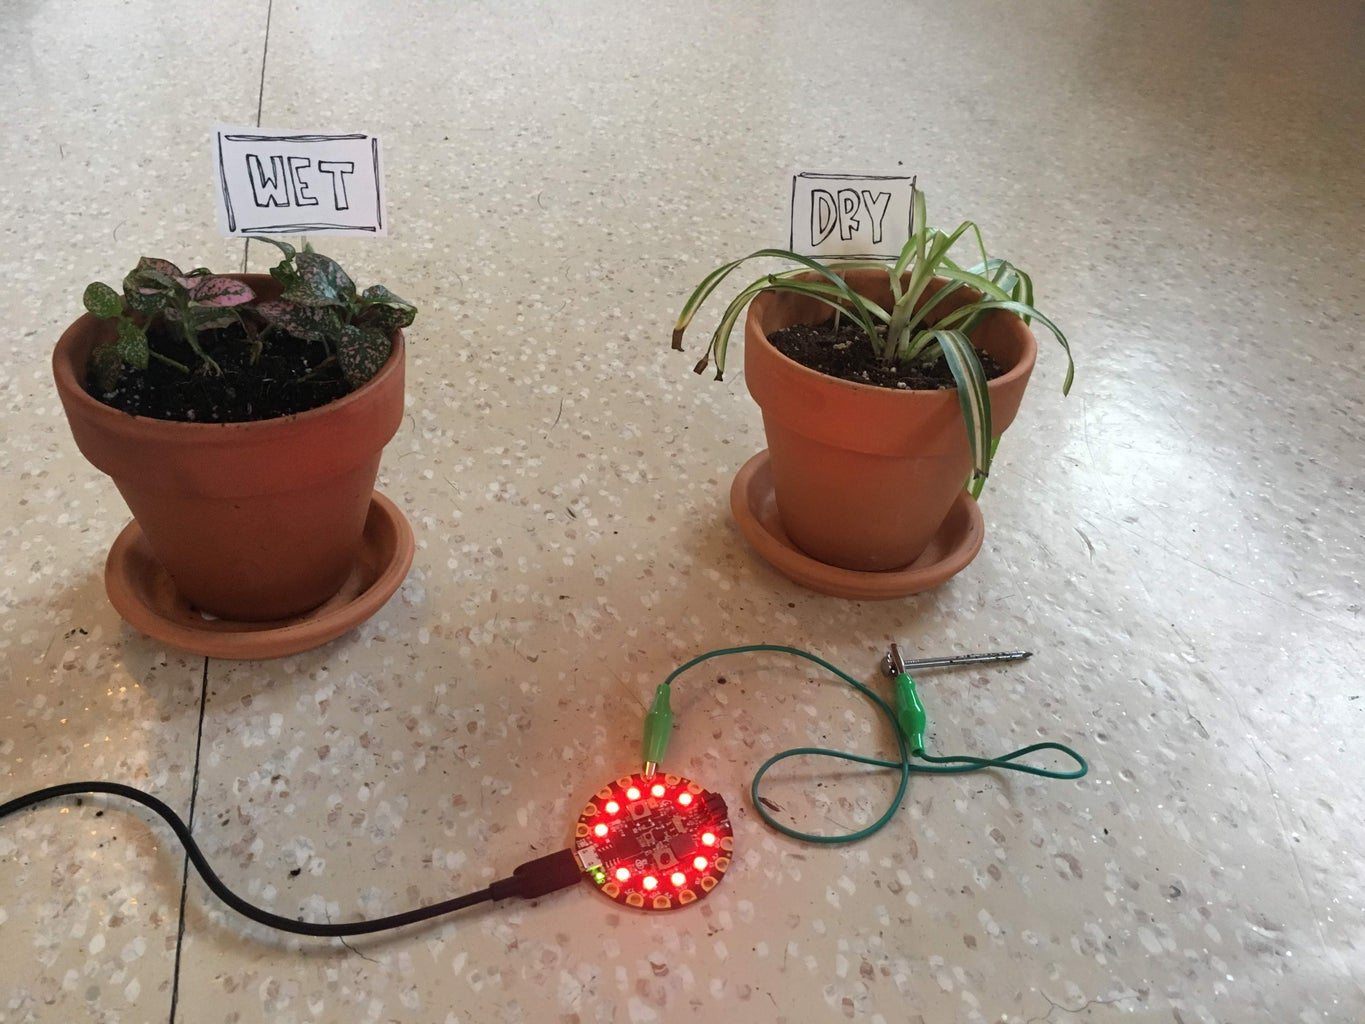 Testing the Soil Sensor and Setting the Dry and Wet Values